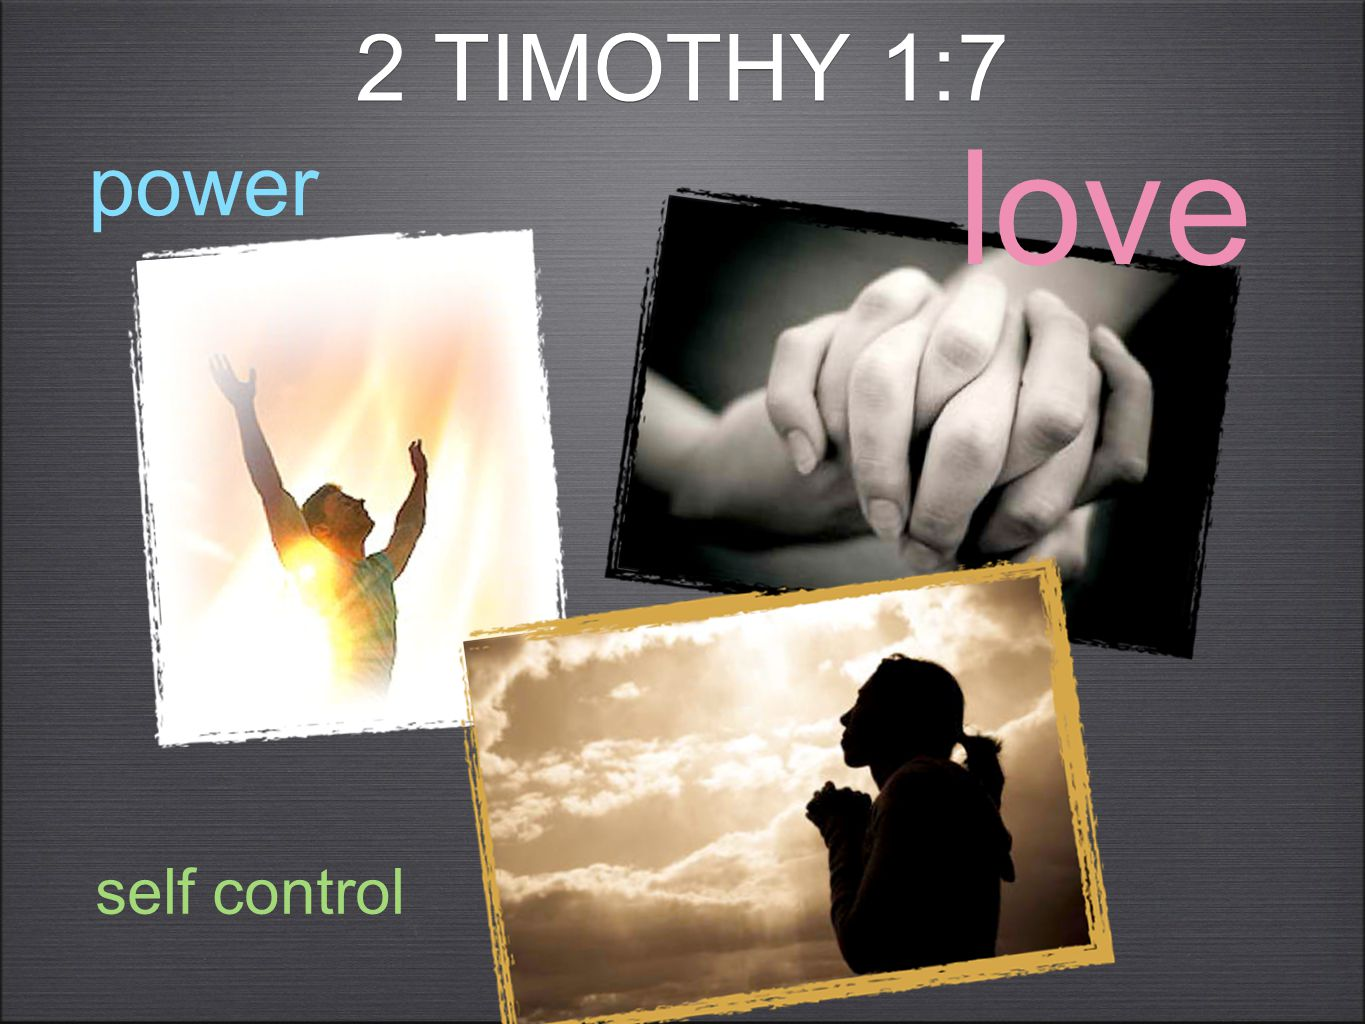 2 TIMOTHY 1:8 Therefore don't be ashamed of the testimony of our Lord, nor of me his prisoner; but endure hardship for the Good News according to the power of God who saved us and called us with a holy calling, not according to our works, but according to his own purpose and grace, which was given to us in Christ Jesus before times eternal,